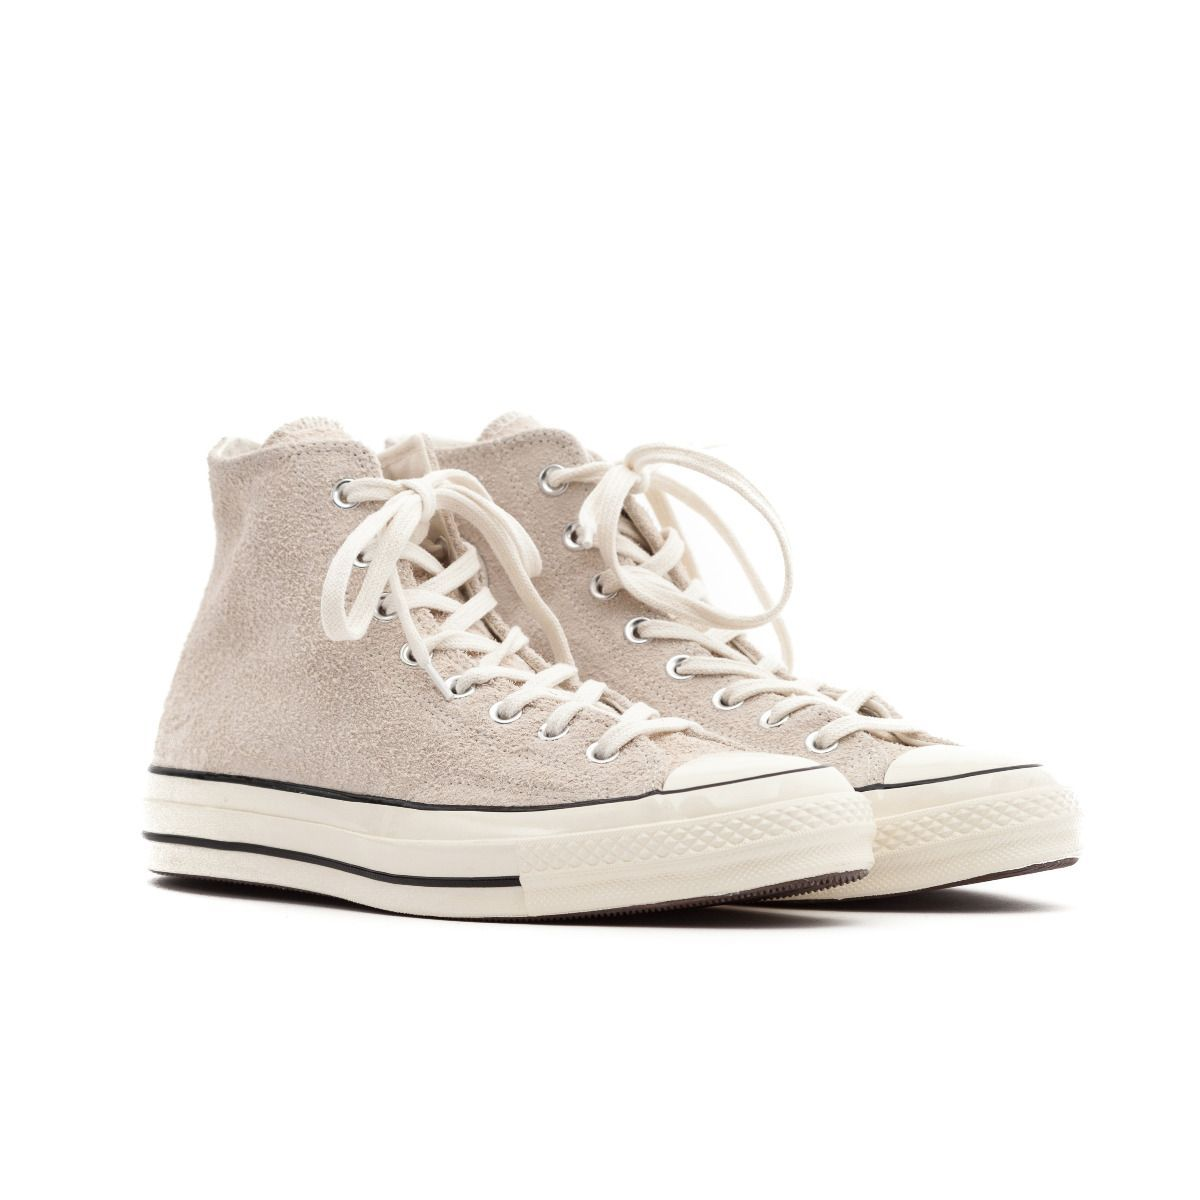 "Chuck Taylor All Star Vintage Canvas The Converse trainer was originally  released in 1917 as ""Non-Skids"", the forerunner of the All Star we know  today, ..."